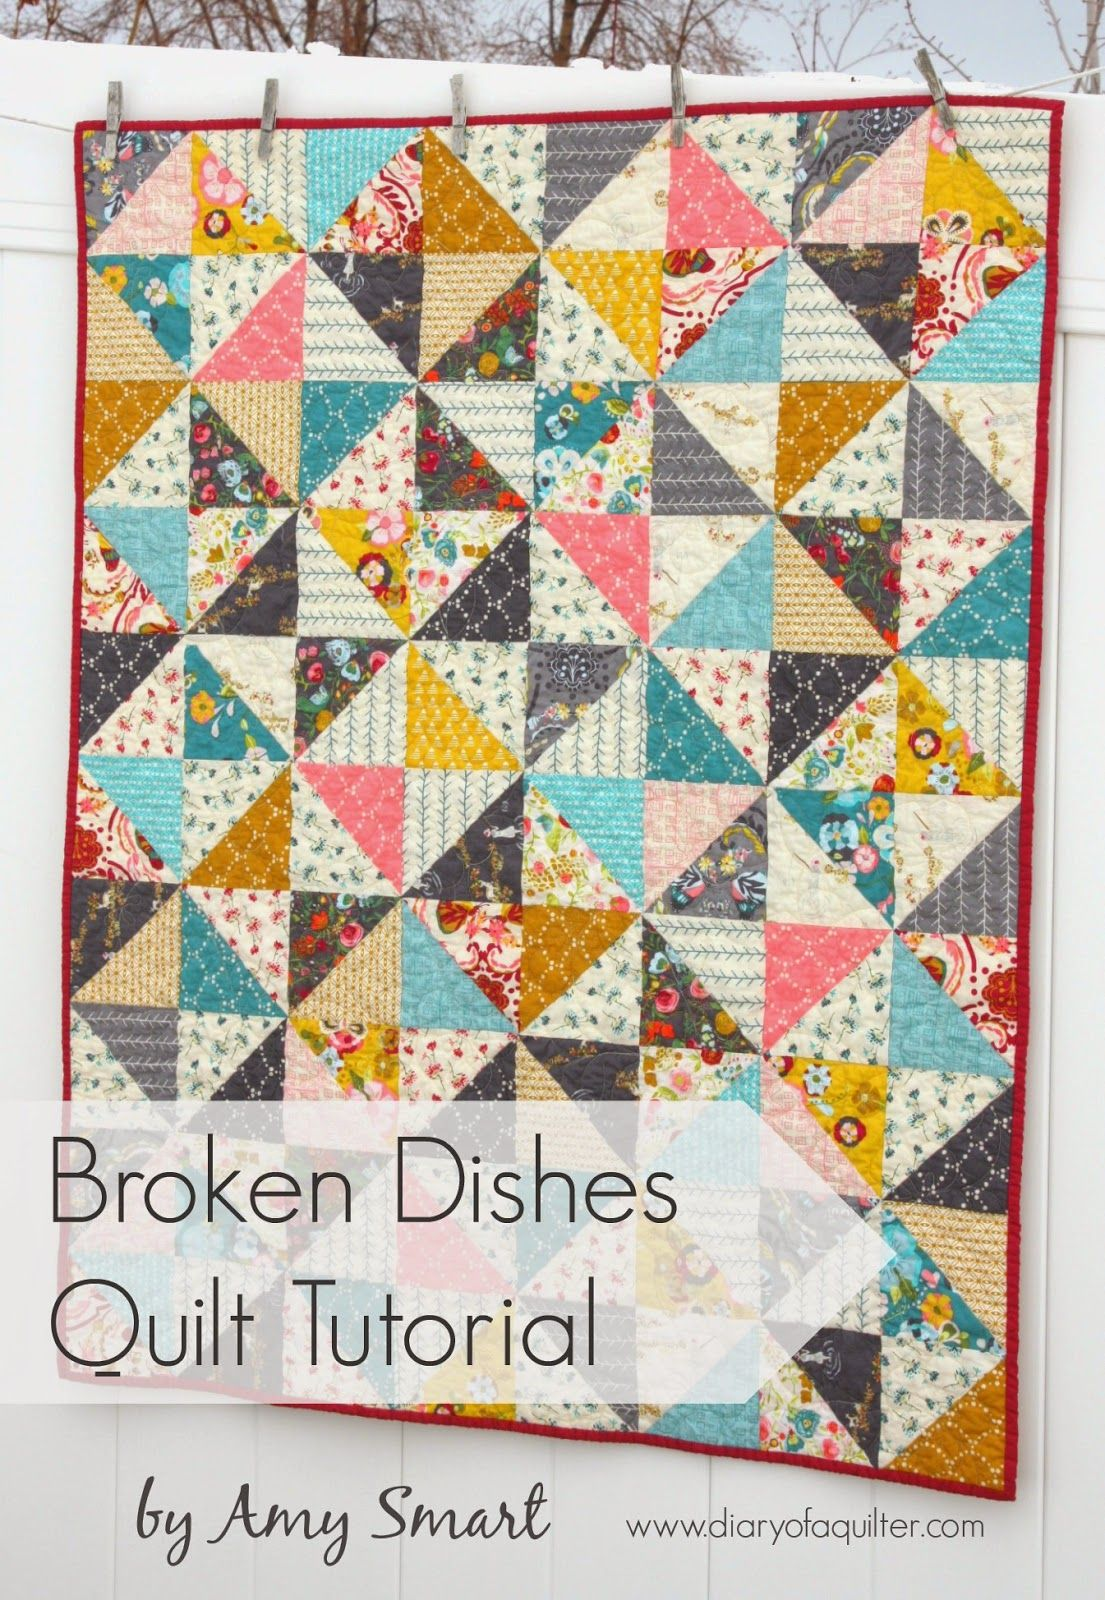 Half Square Triangle baby quilt pattern | Half square triangle